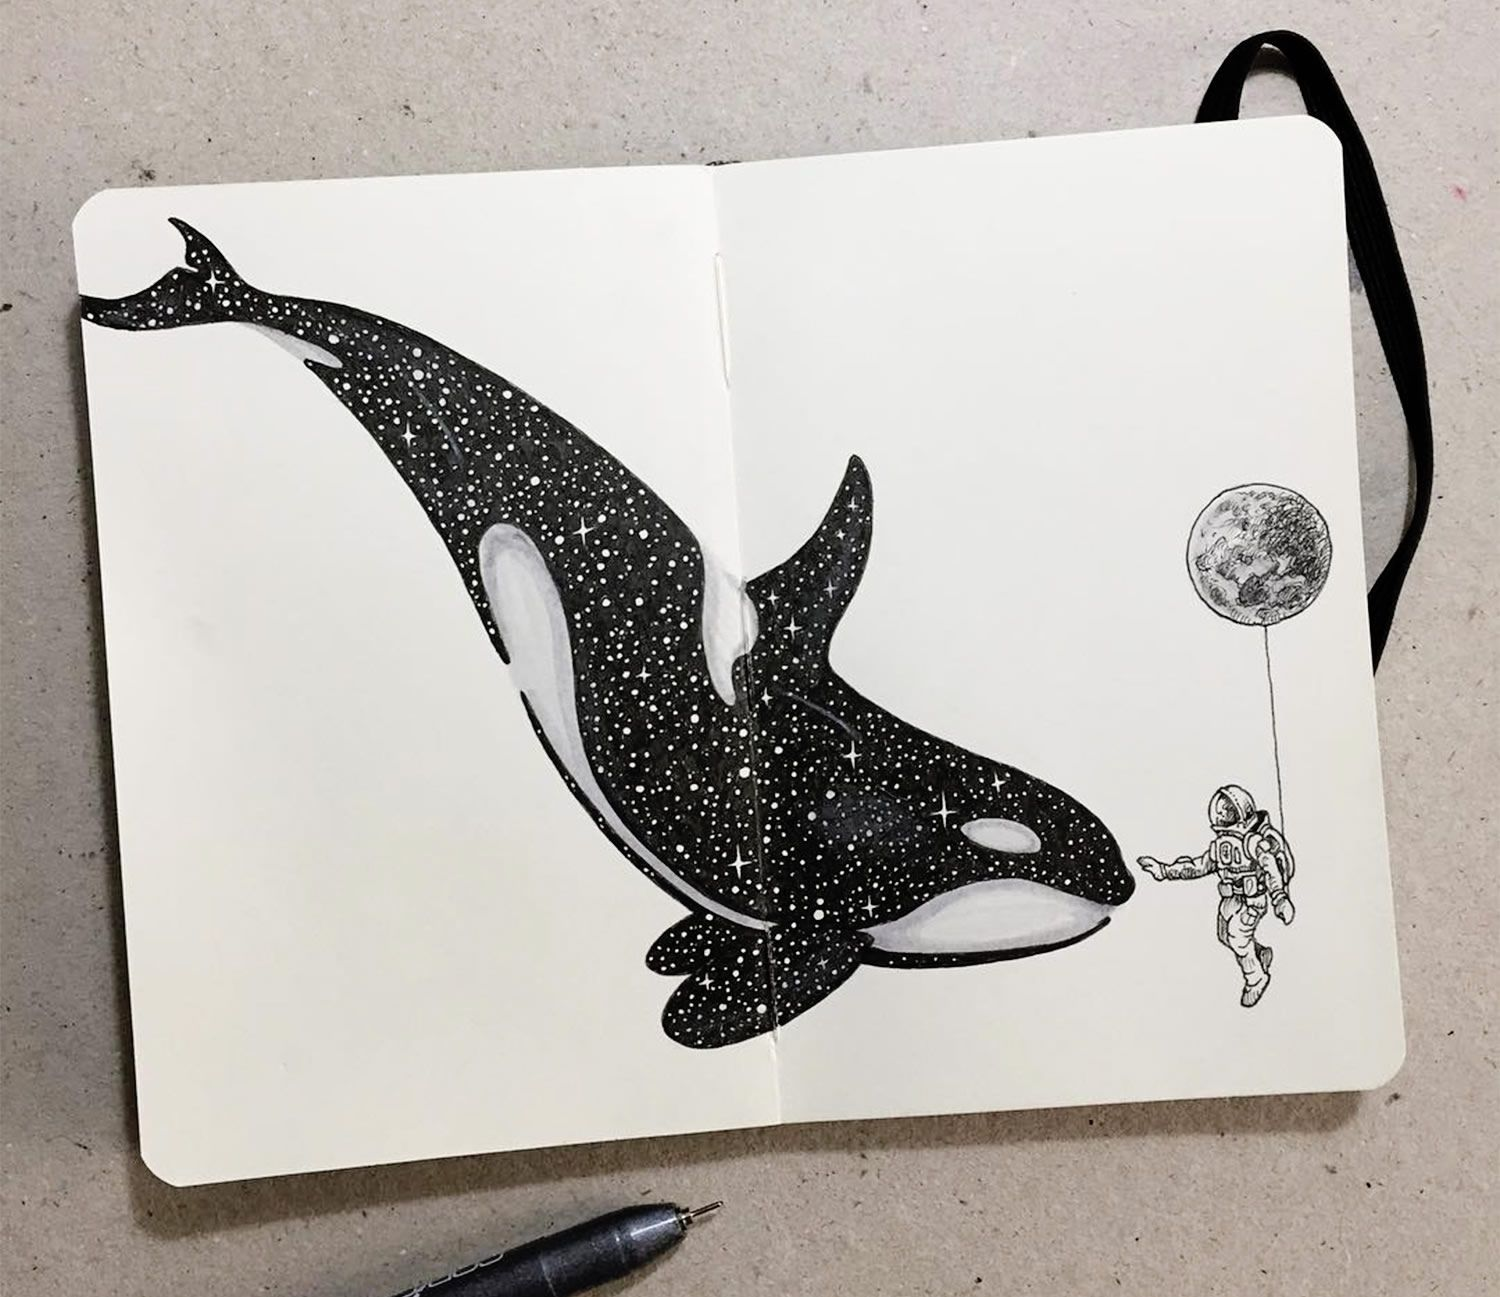 Artists Who Use Their Sketchbook As Handheld Galleries Dessin